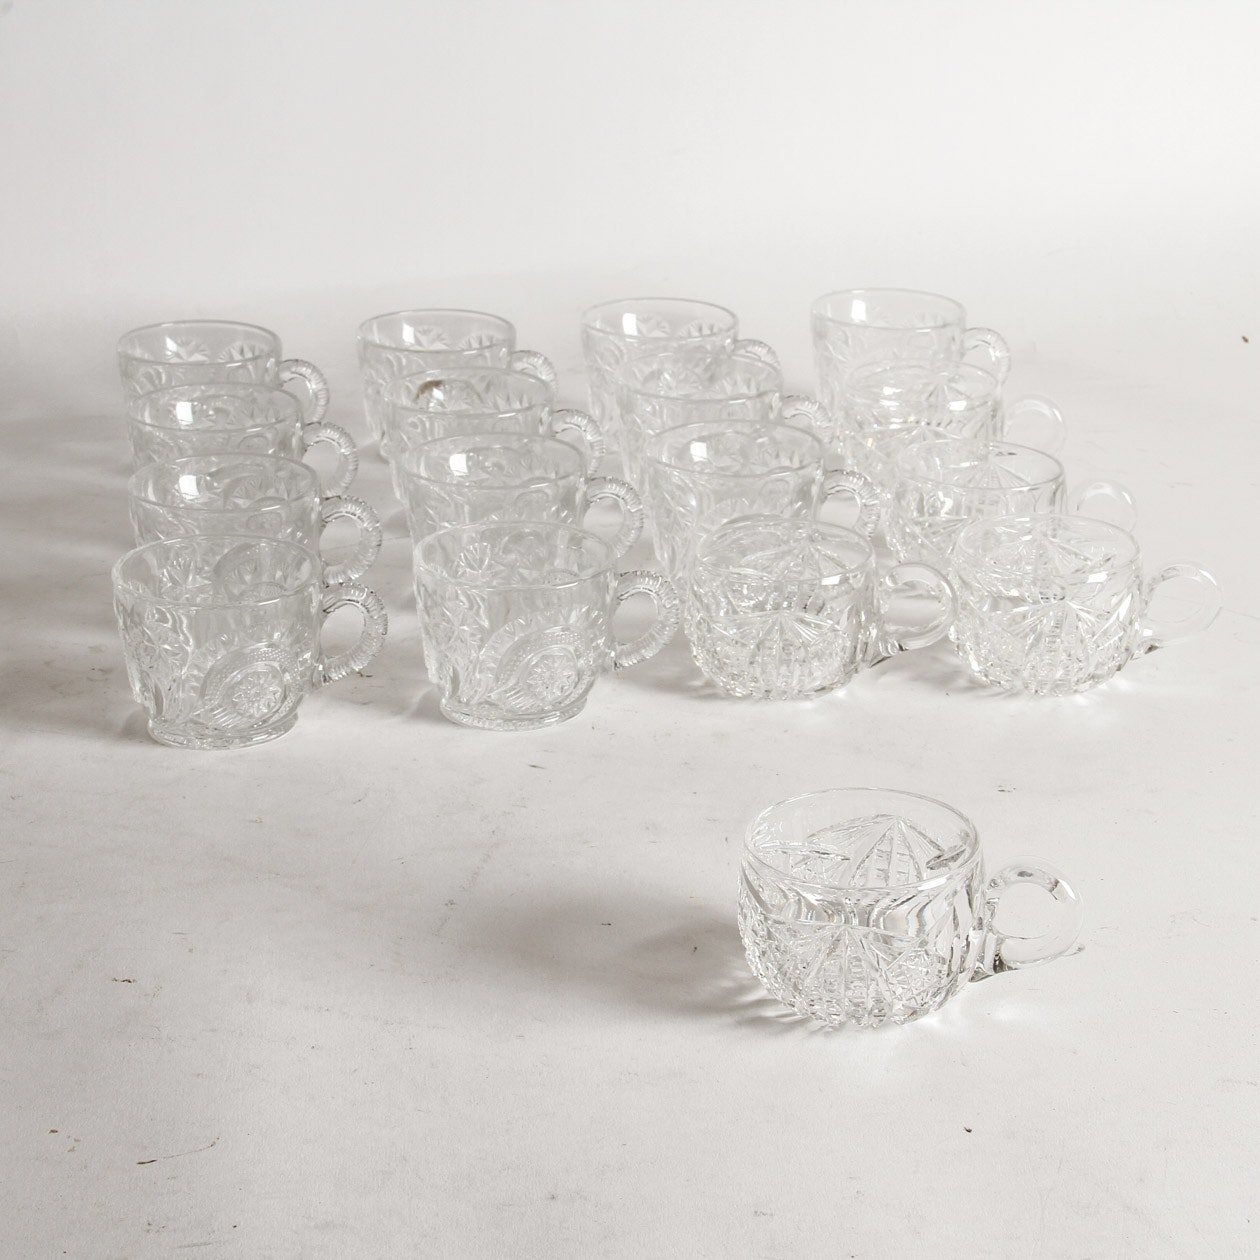 Collection of Glass Teacups